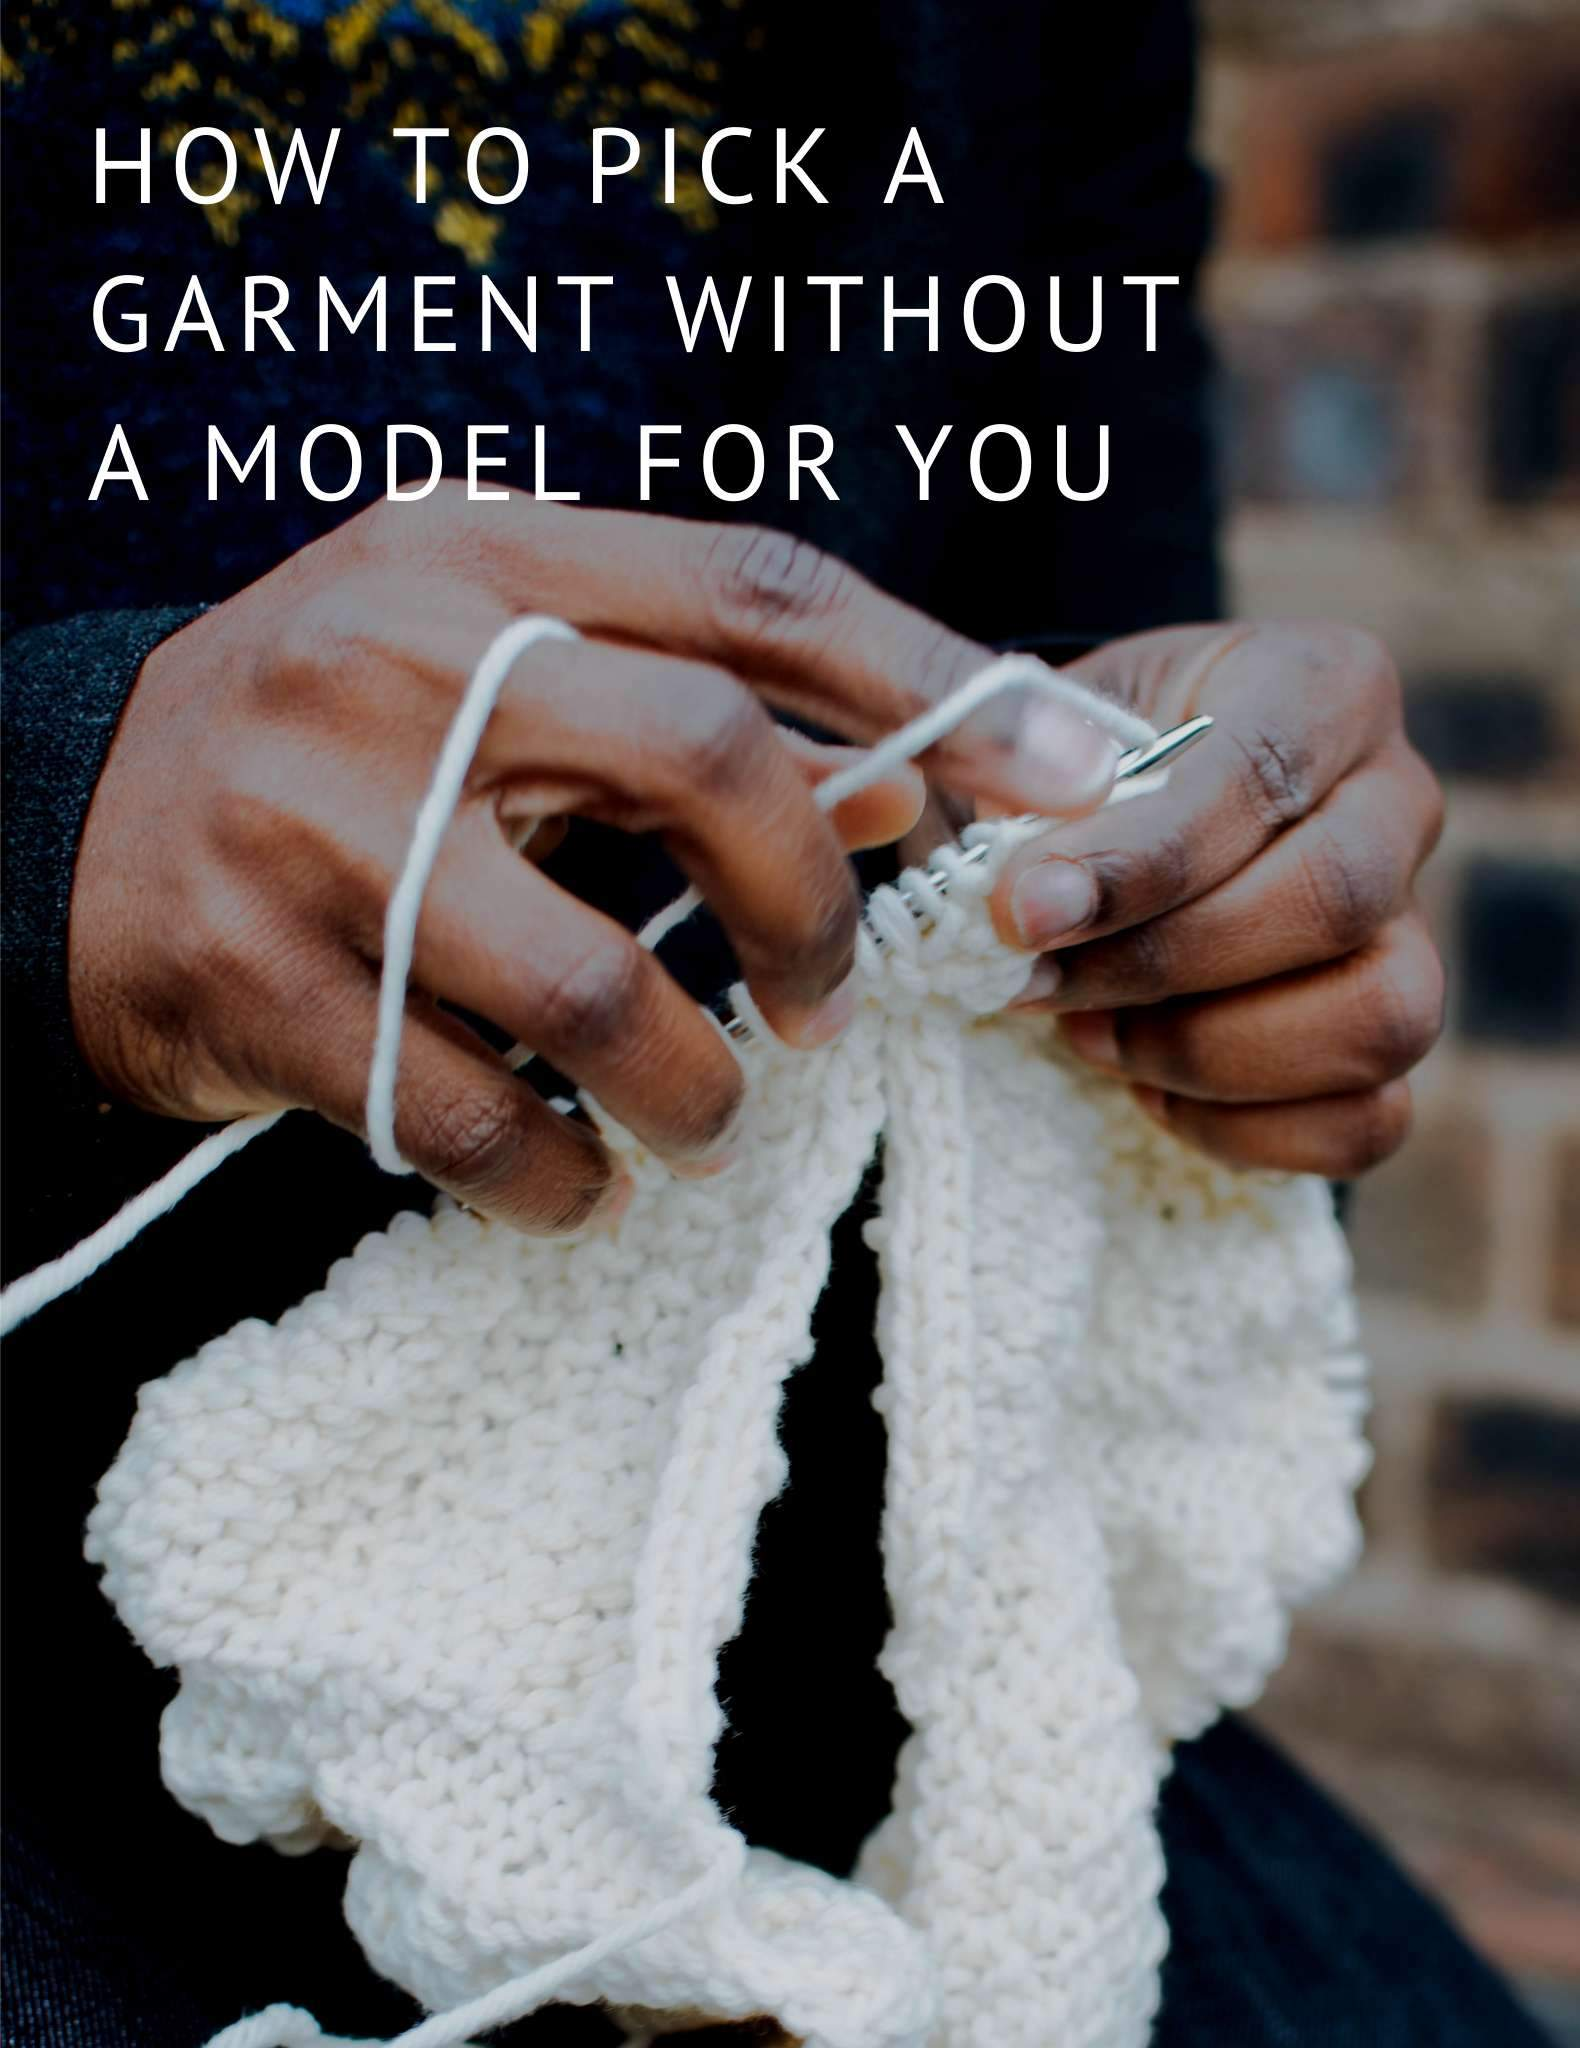 How to Pick a Garment Without a Model for You